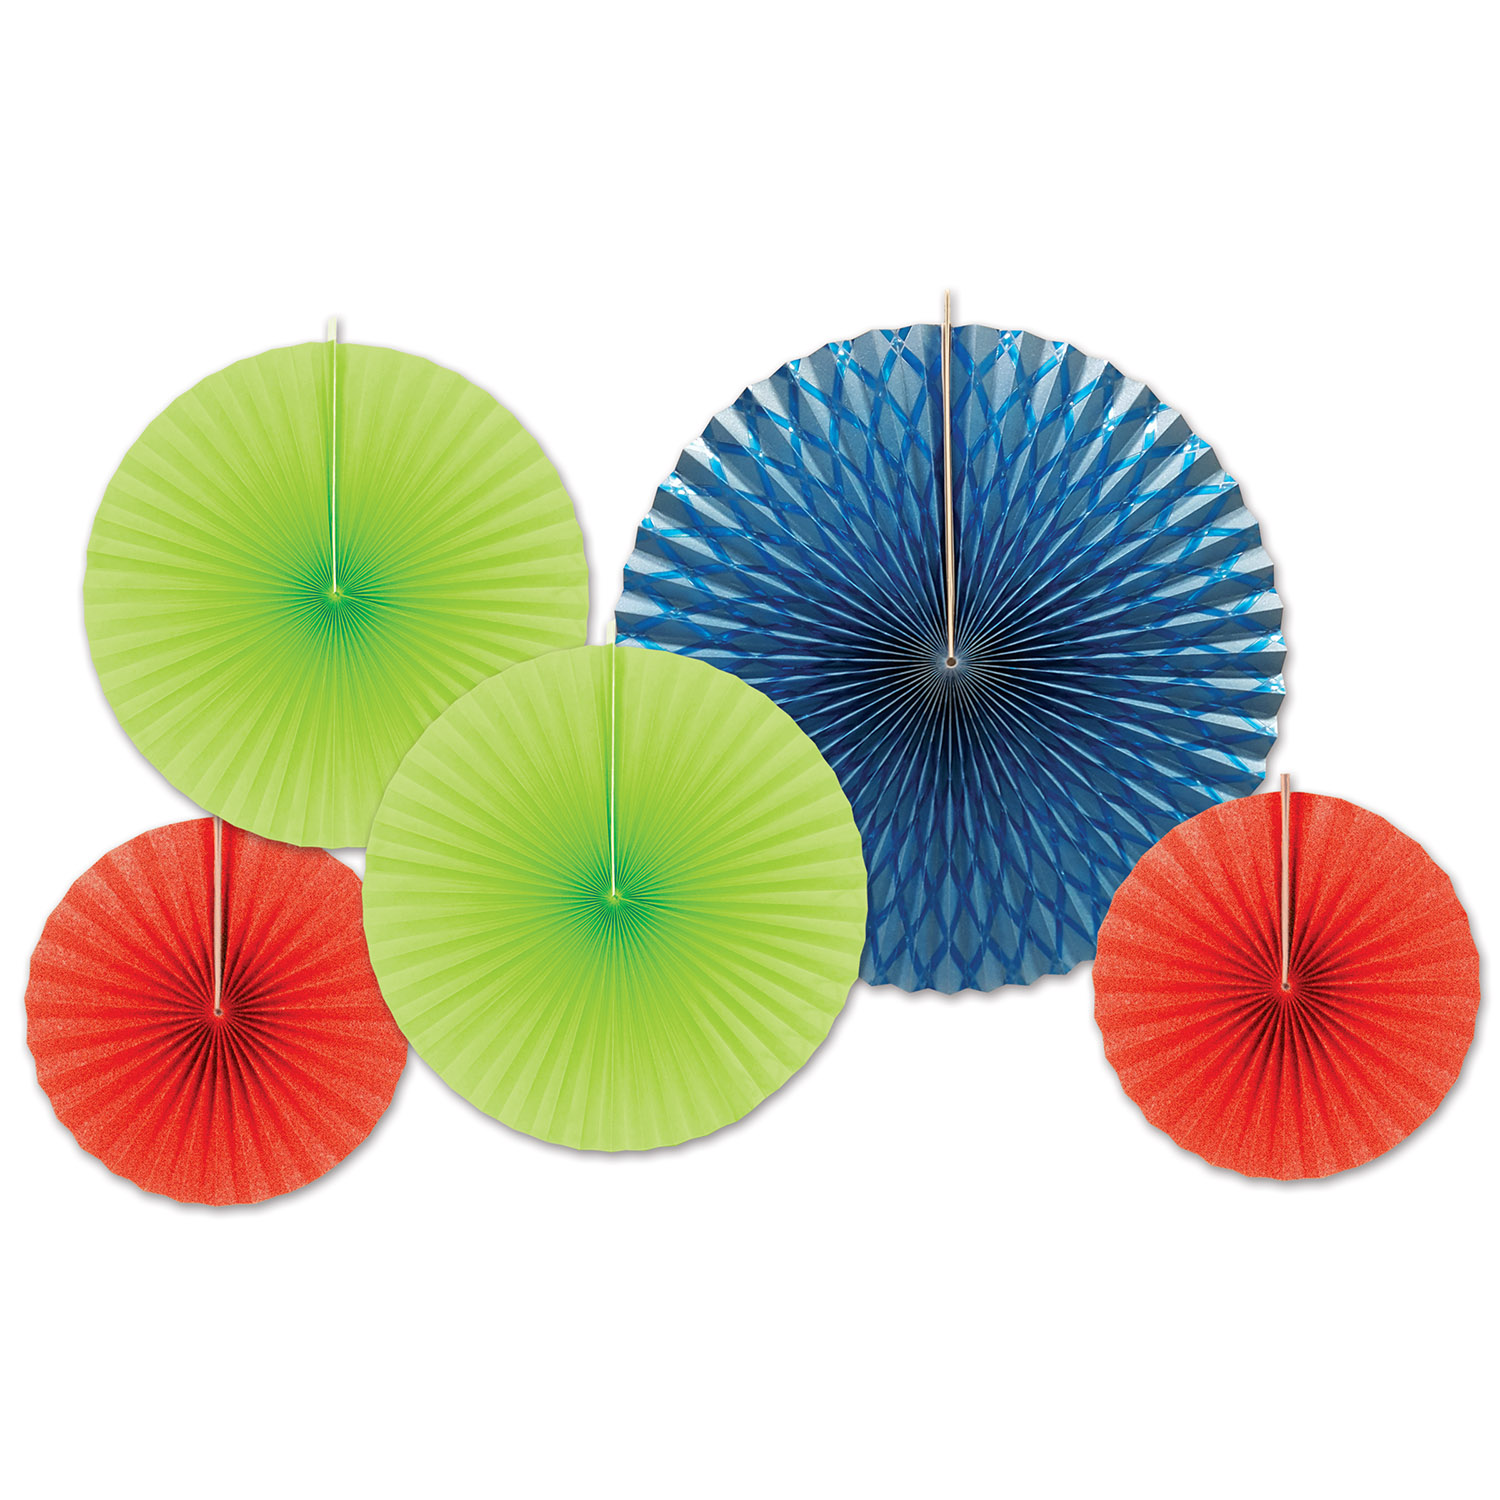 Assorted sized paper and foil fans in blue, green, and red.